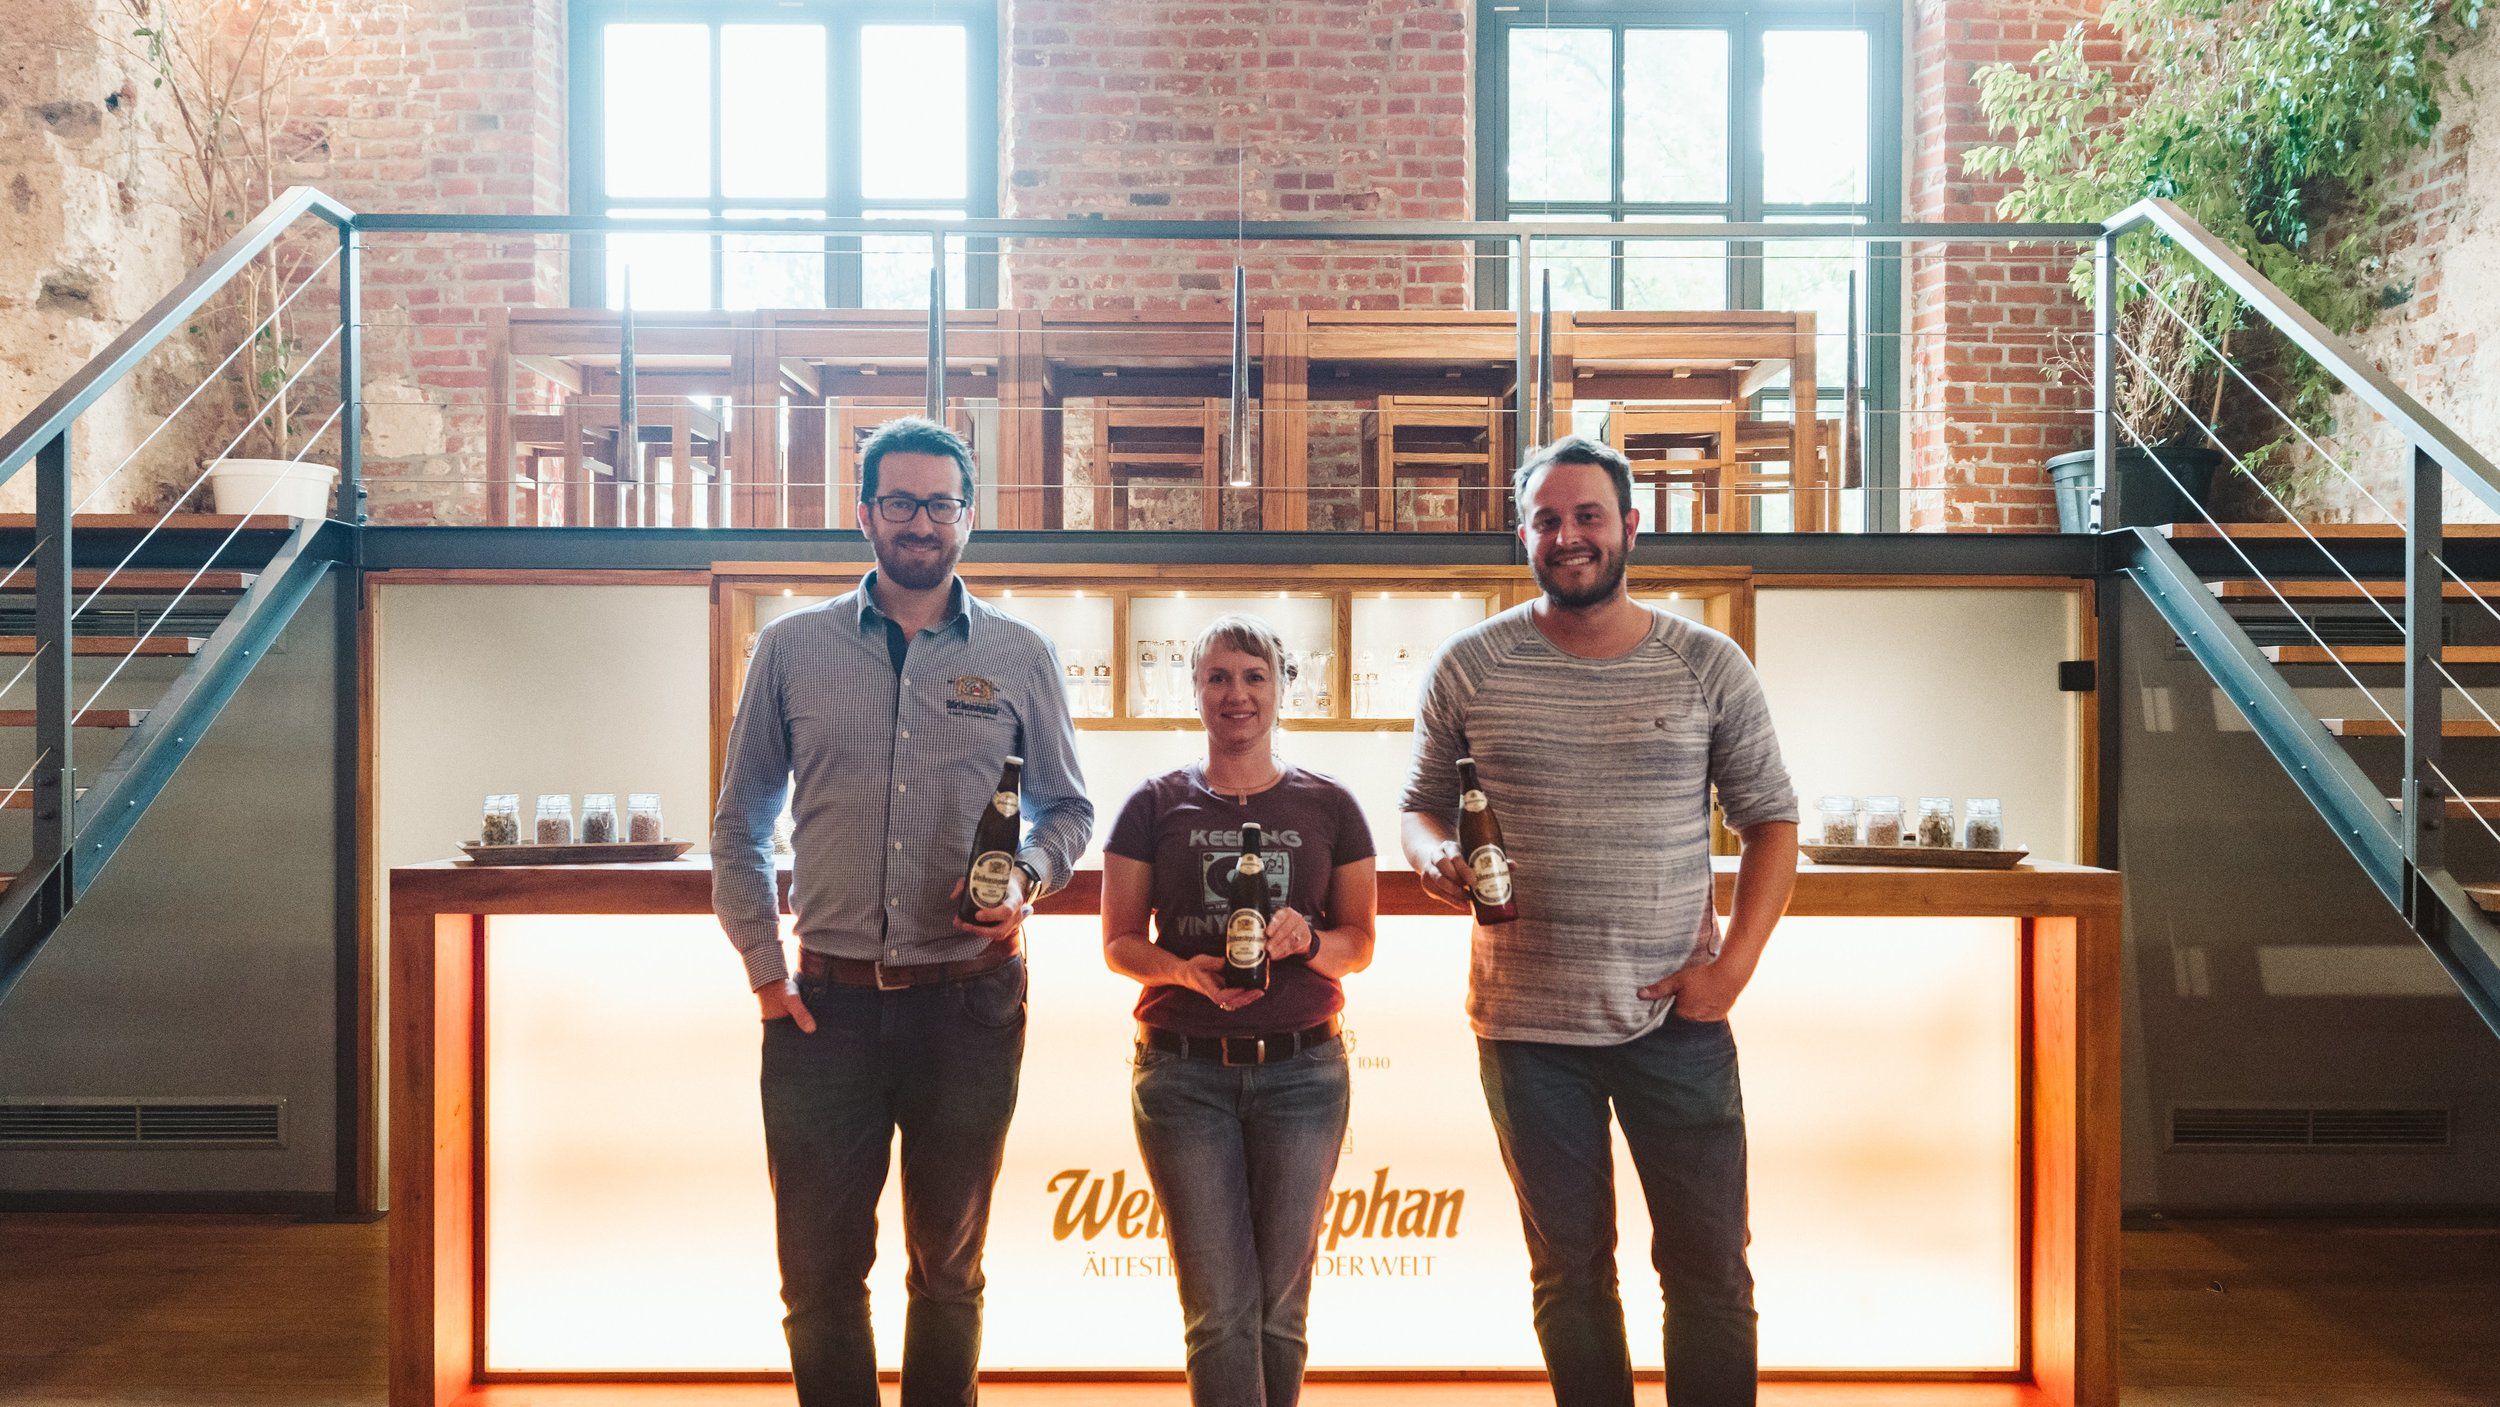 Brewmaster Tobias Zollo of Weihenstephan with Tonya Cornett and Ferdinand Weingarten